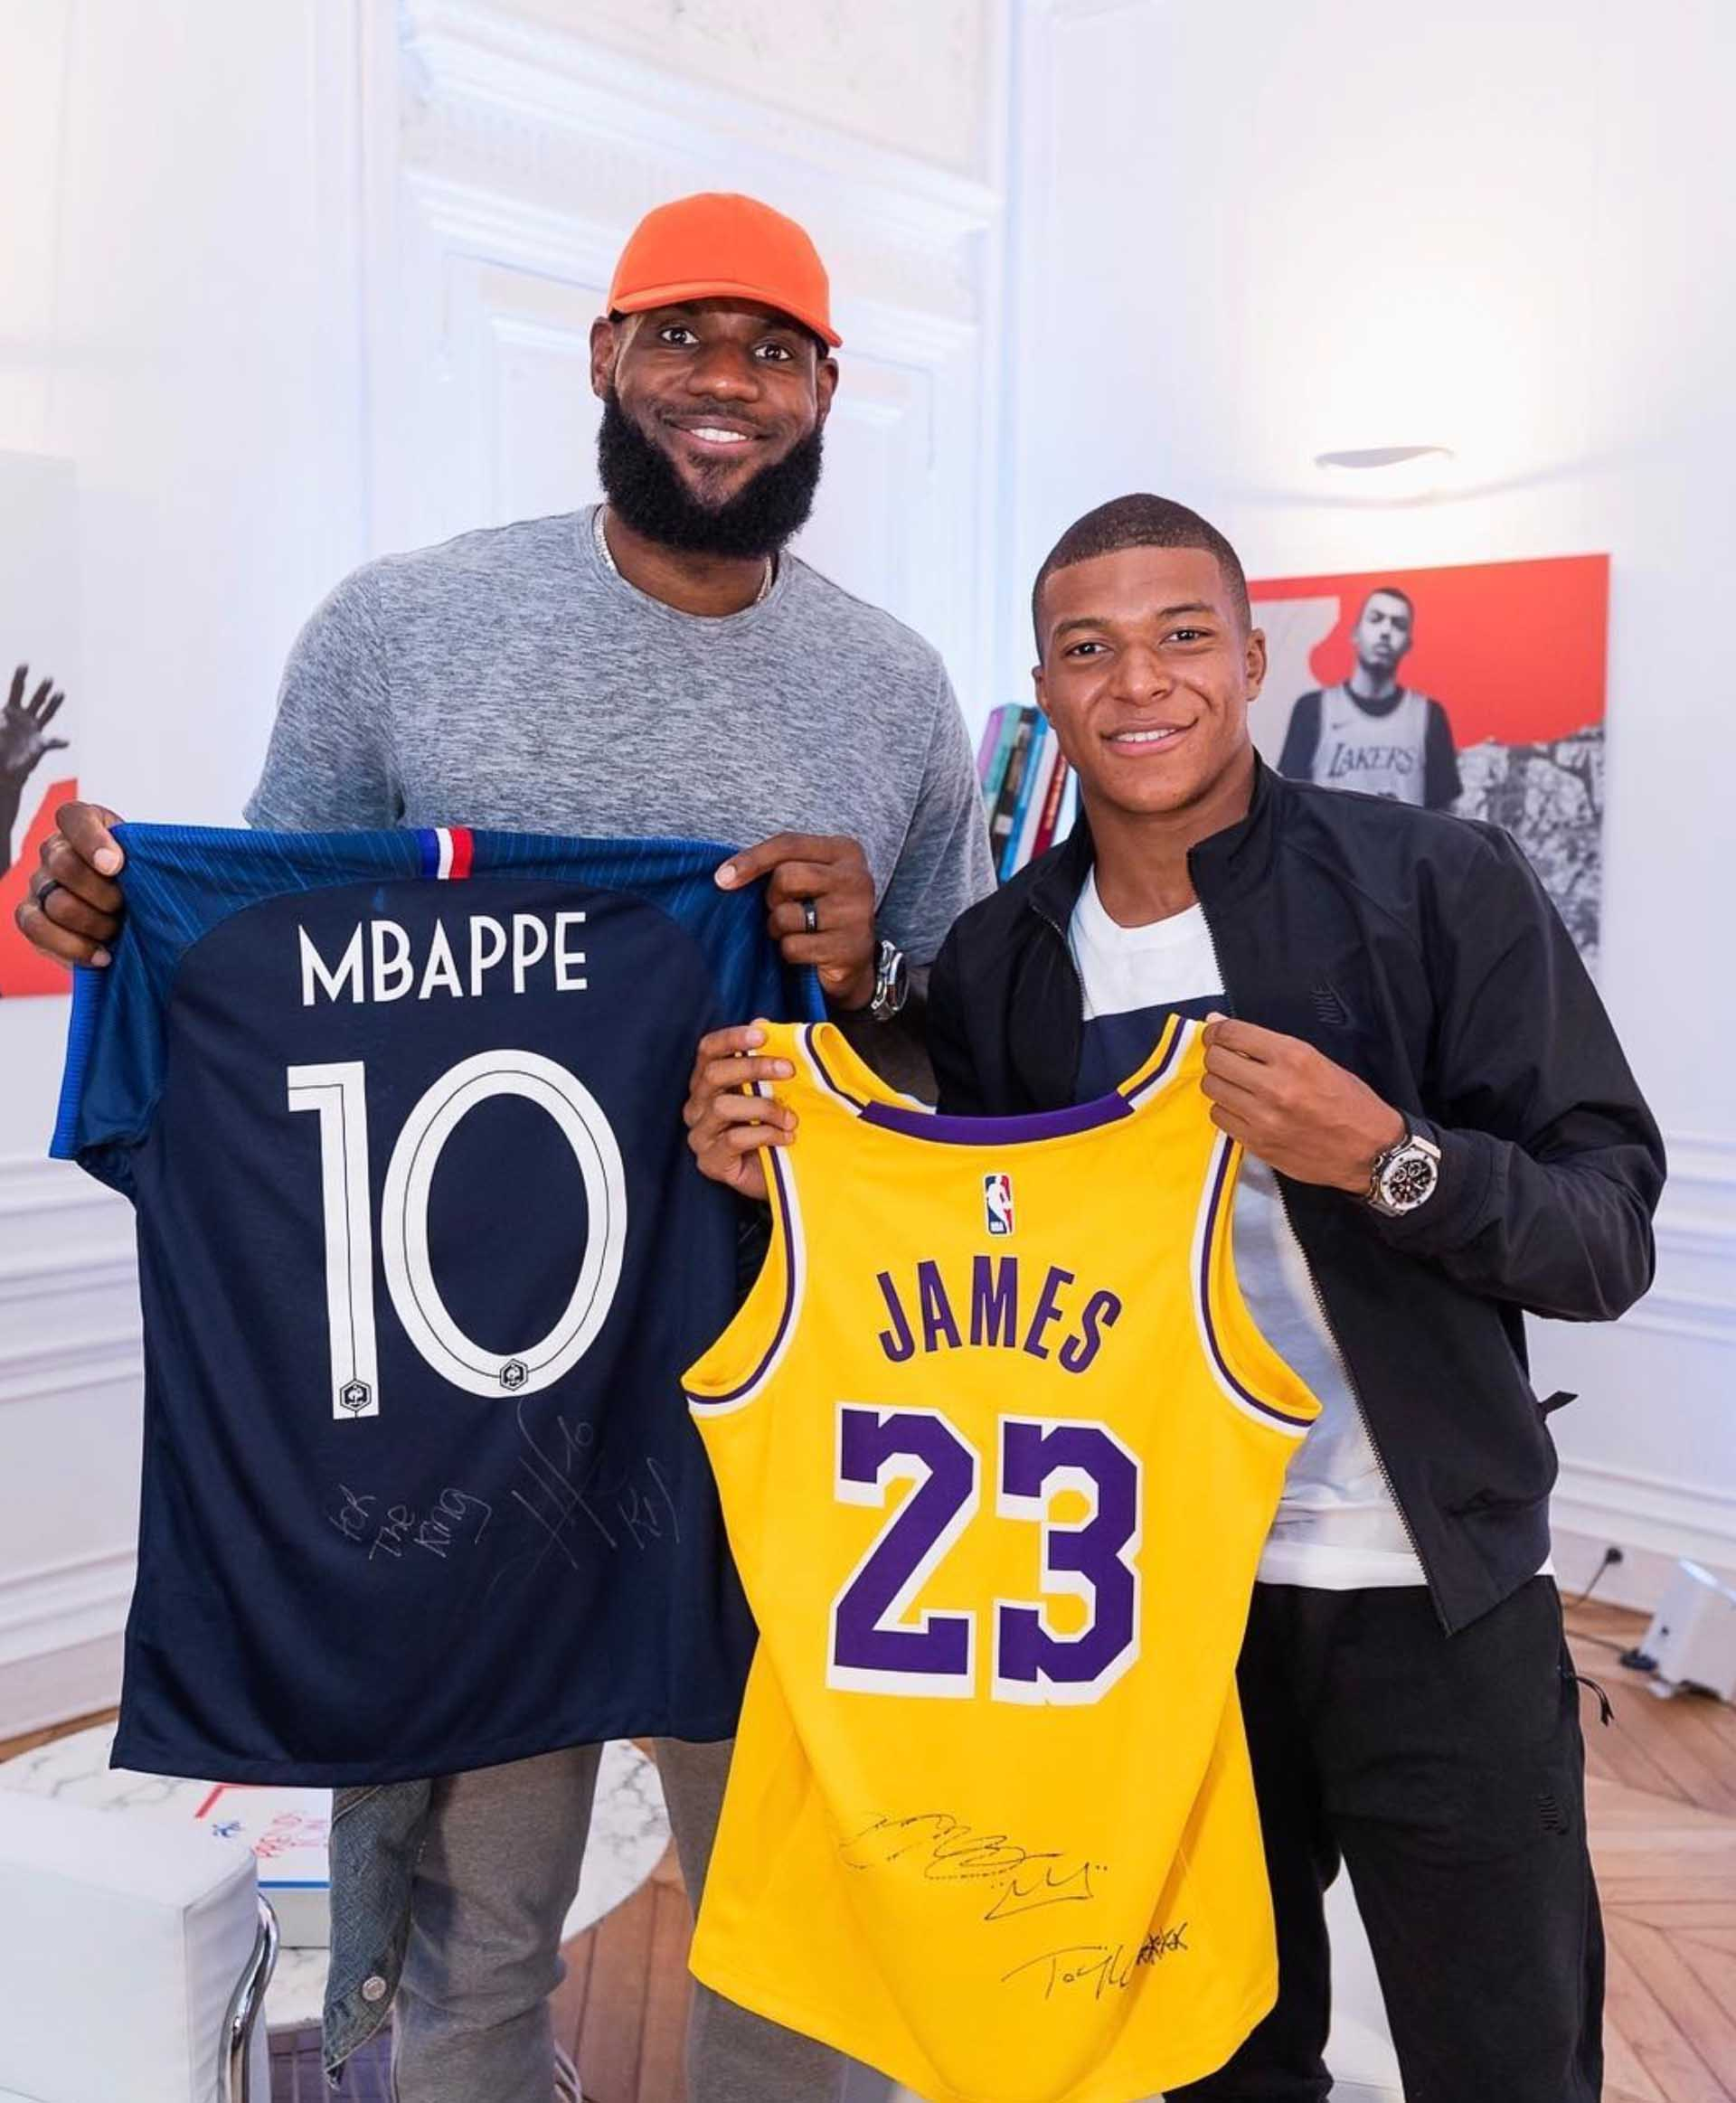 the latest fac7e ecebf Mbappe & LeBron Link Up in Paris - SoccerBible